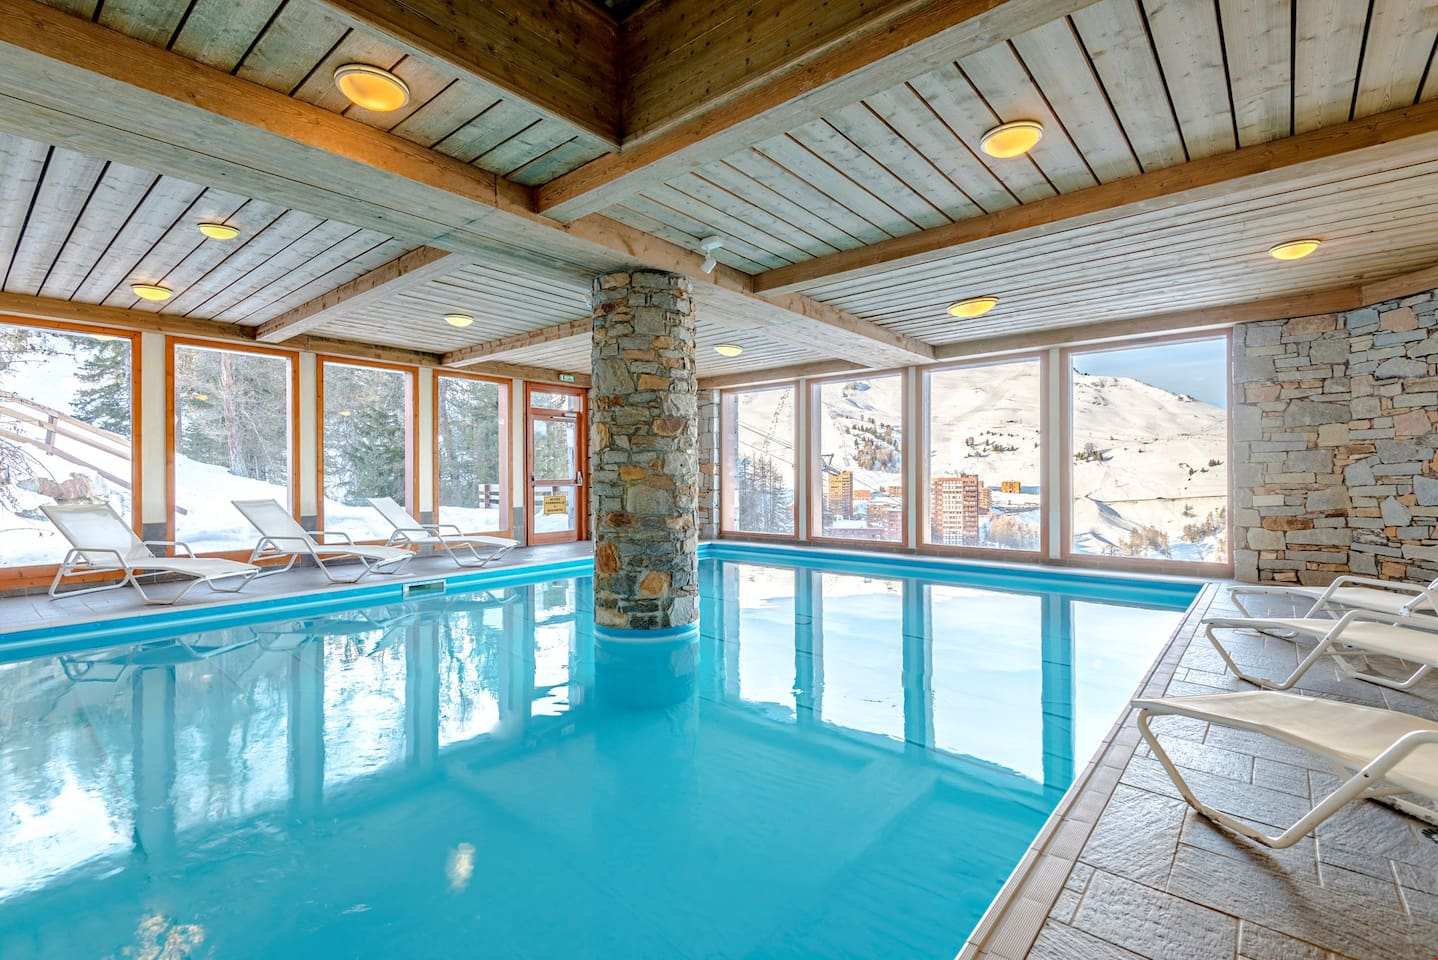 Spend time with family and friends in the indoor pool!